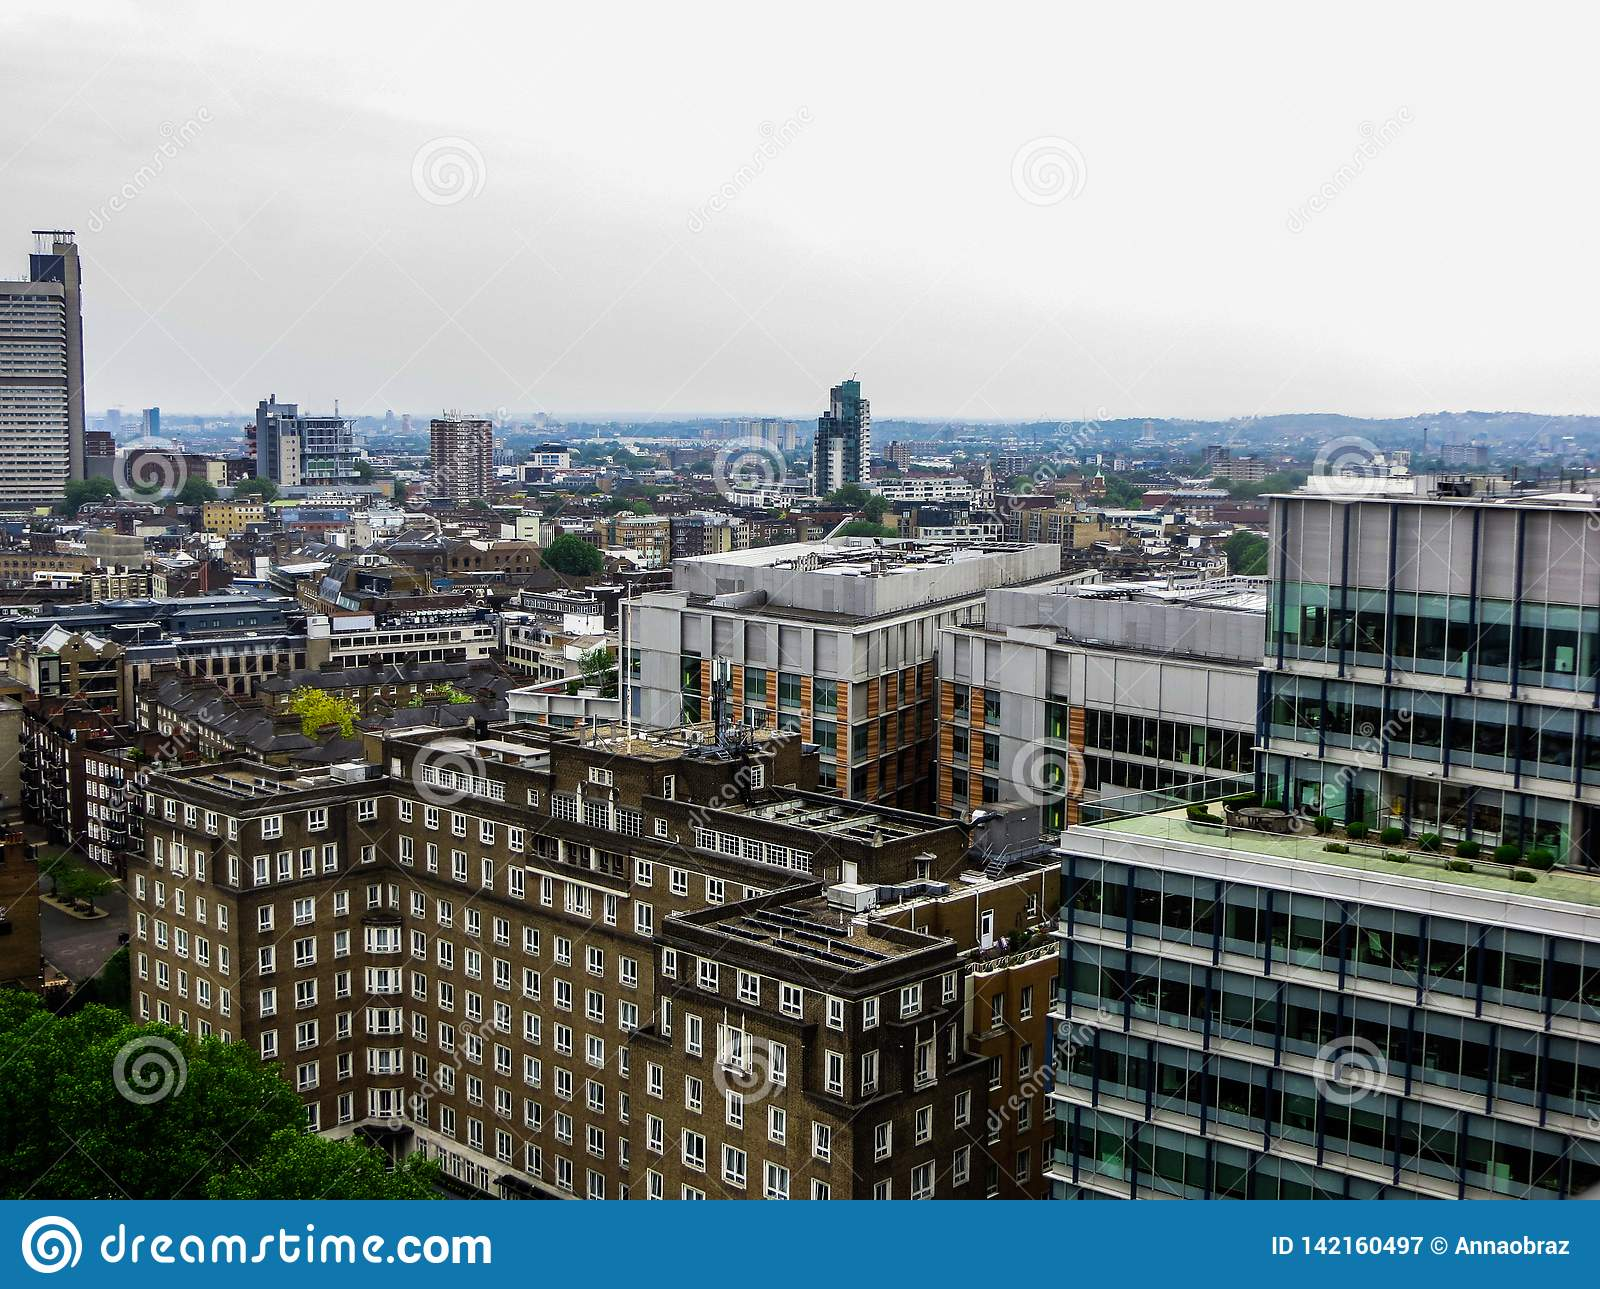 May 20, 2018, England. A panorama of London from the height of the observation deck of the Museum of Modern Art